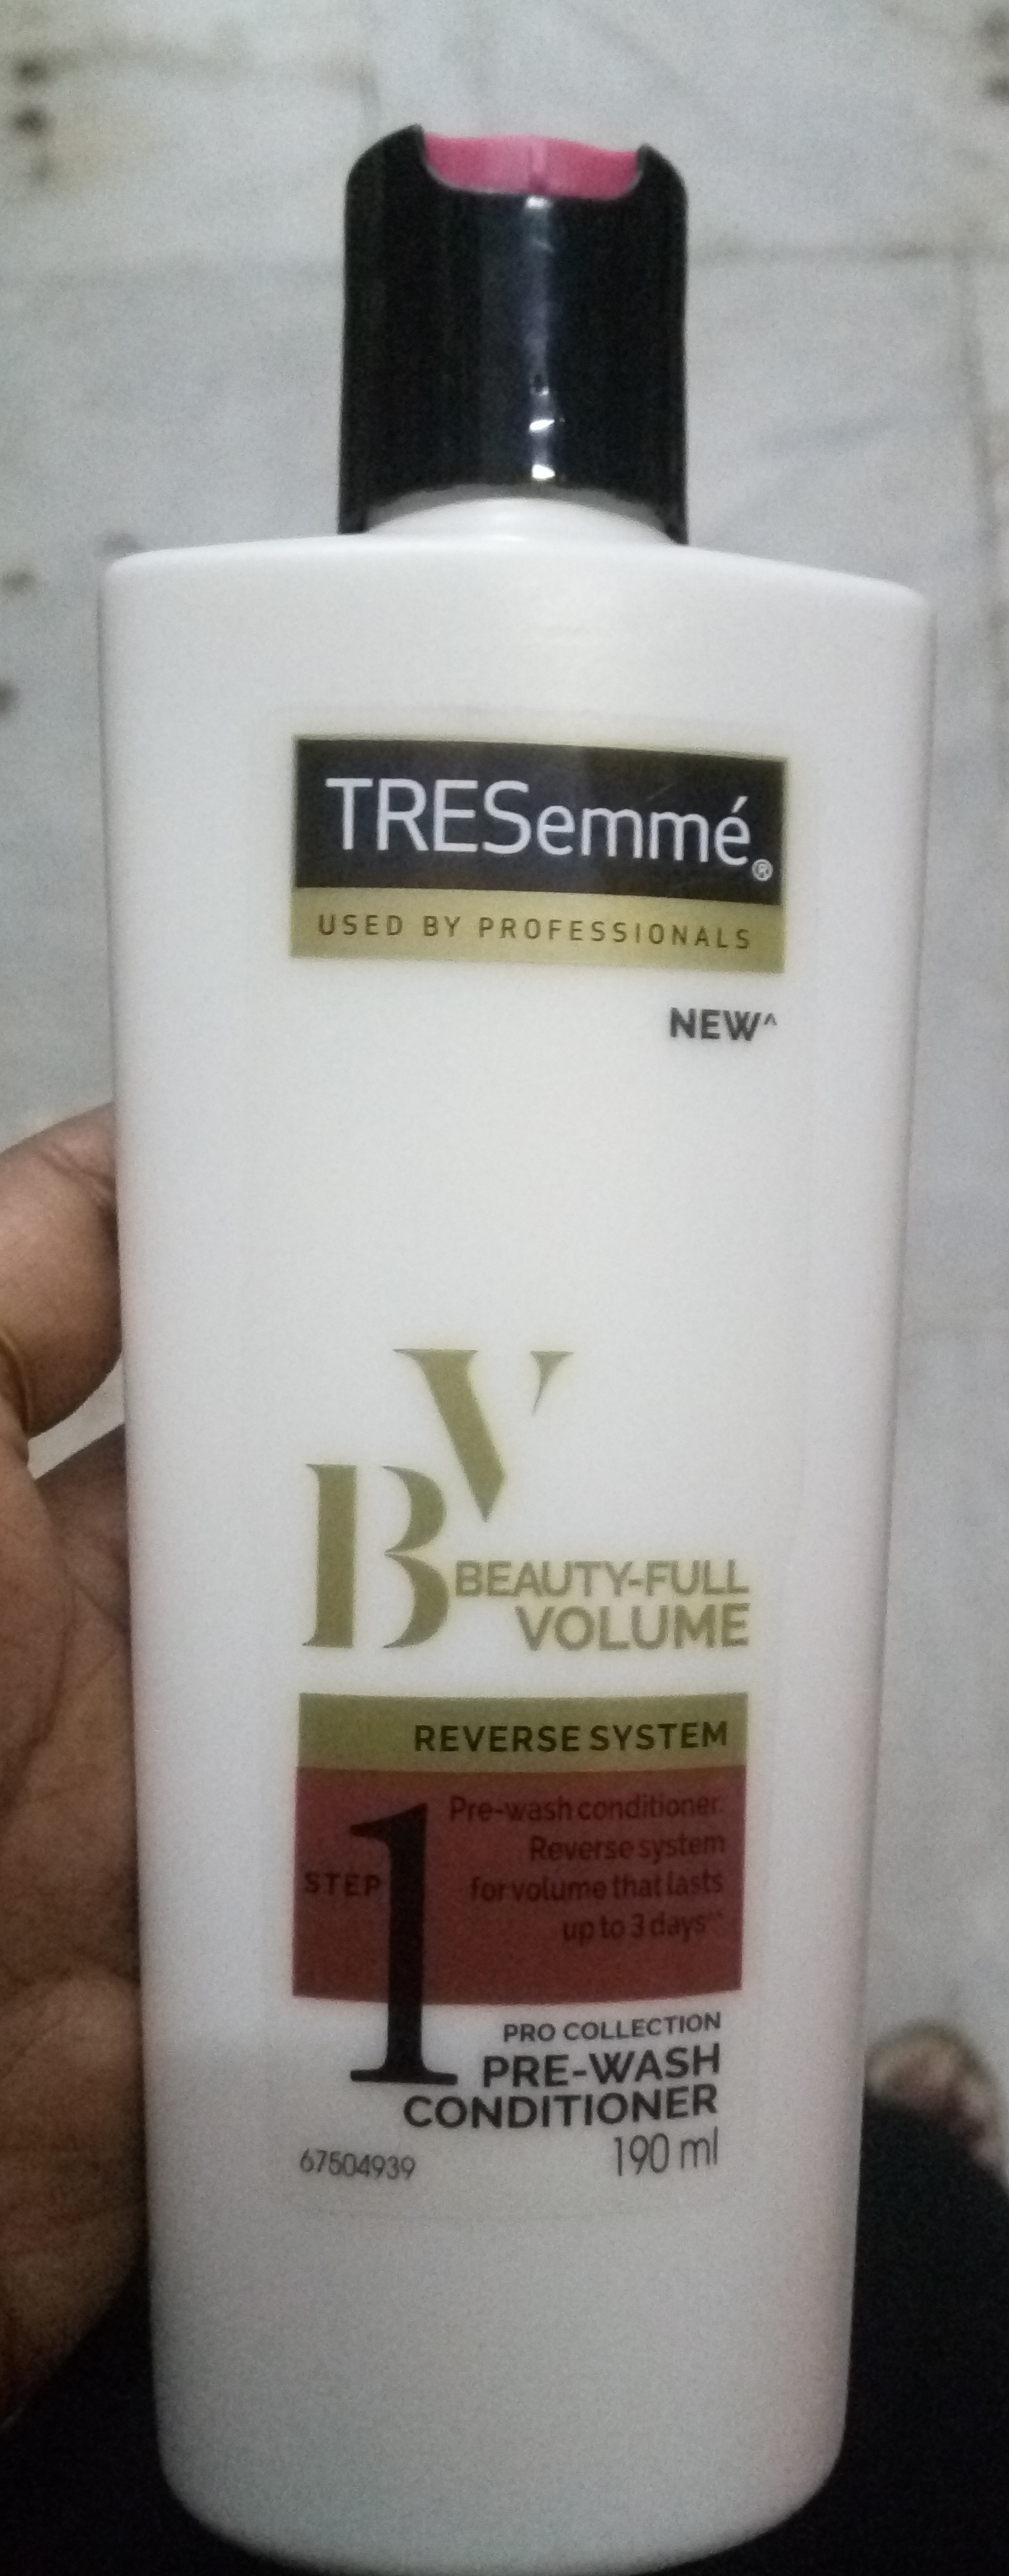 TRESemme Beauty-Full Volume Pre-Wash Conditioner-Not as expected-By Nasreen-1